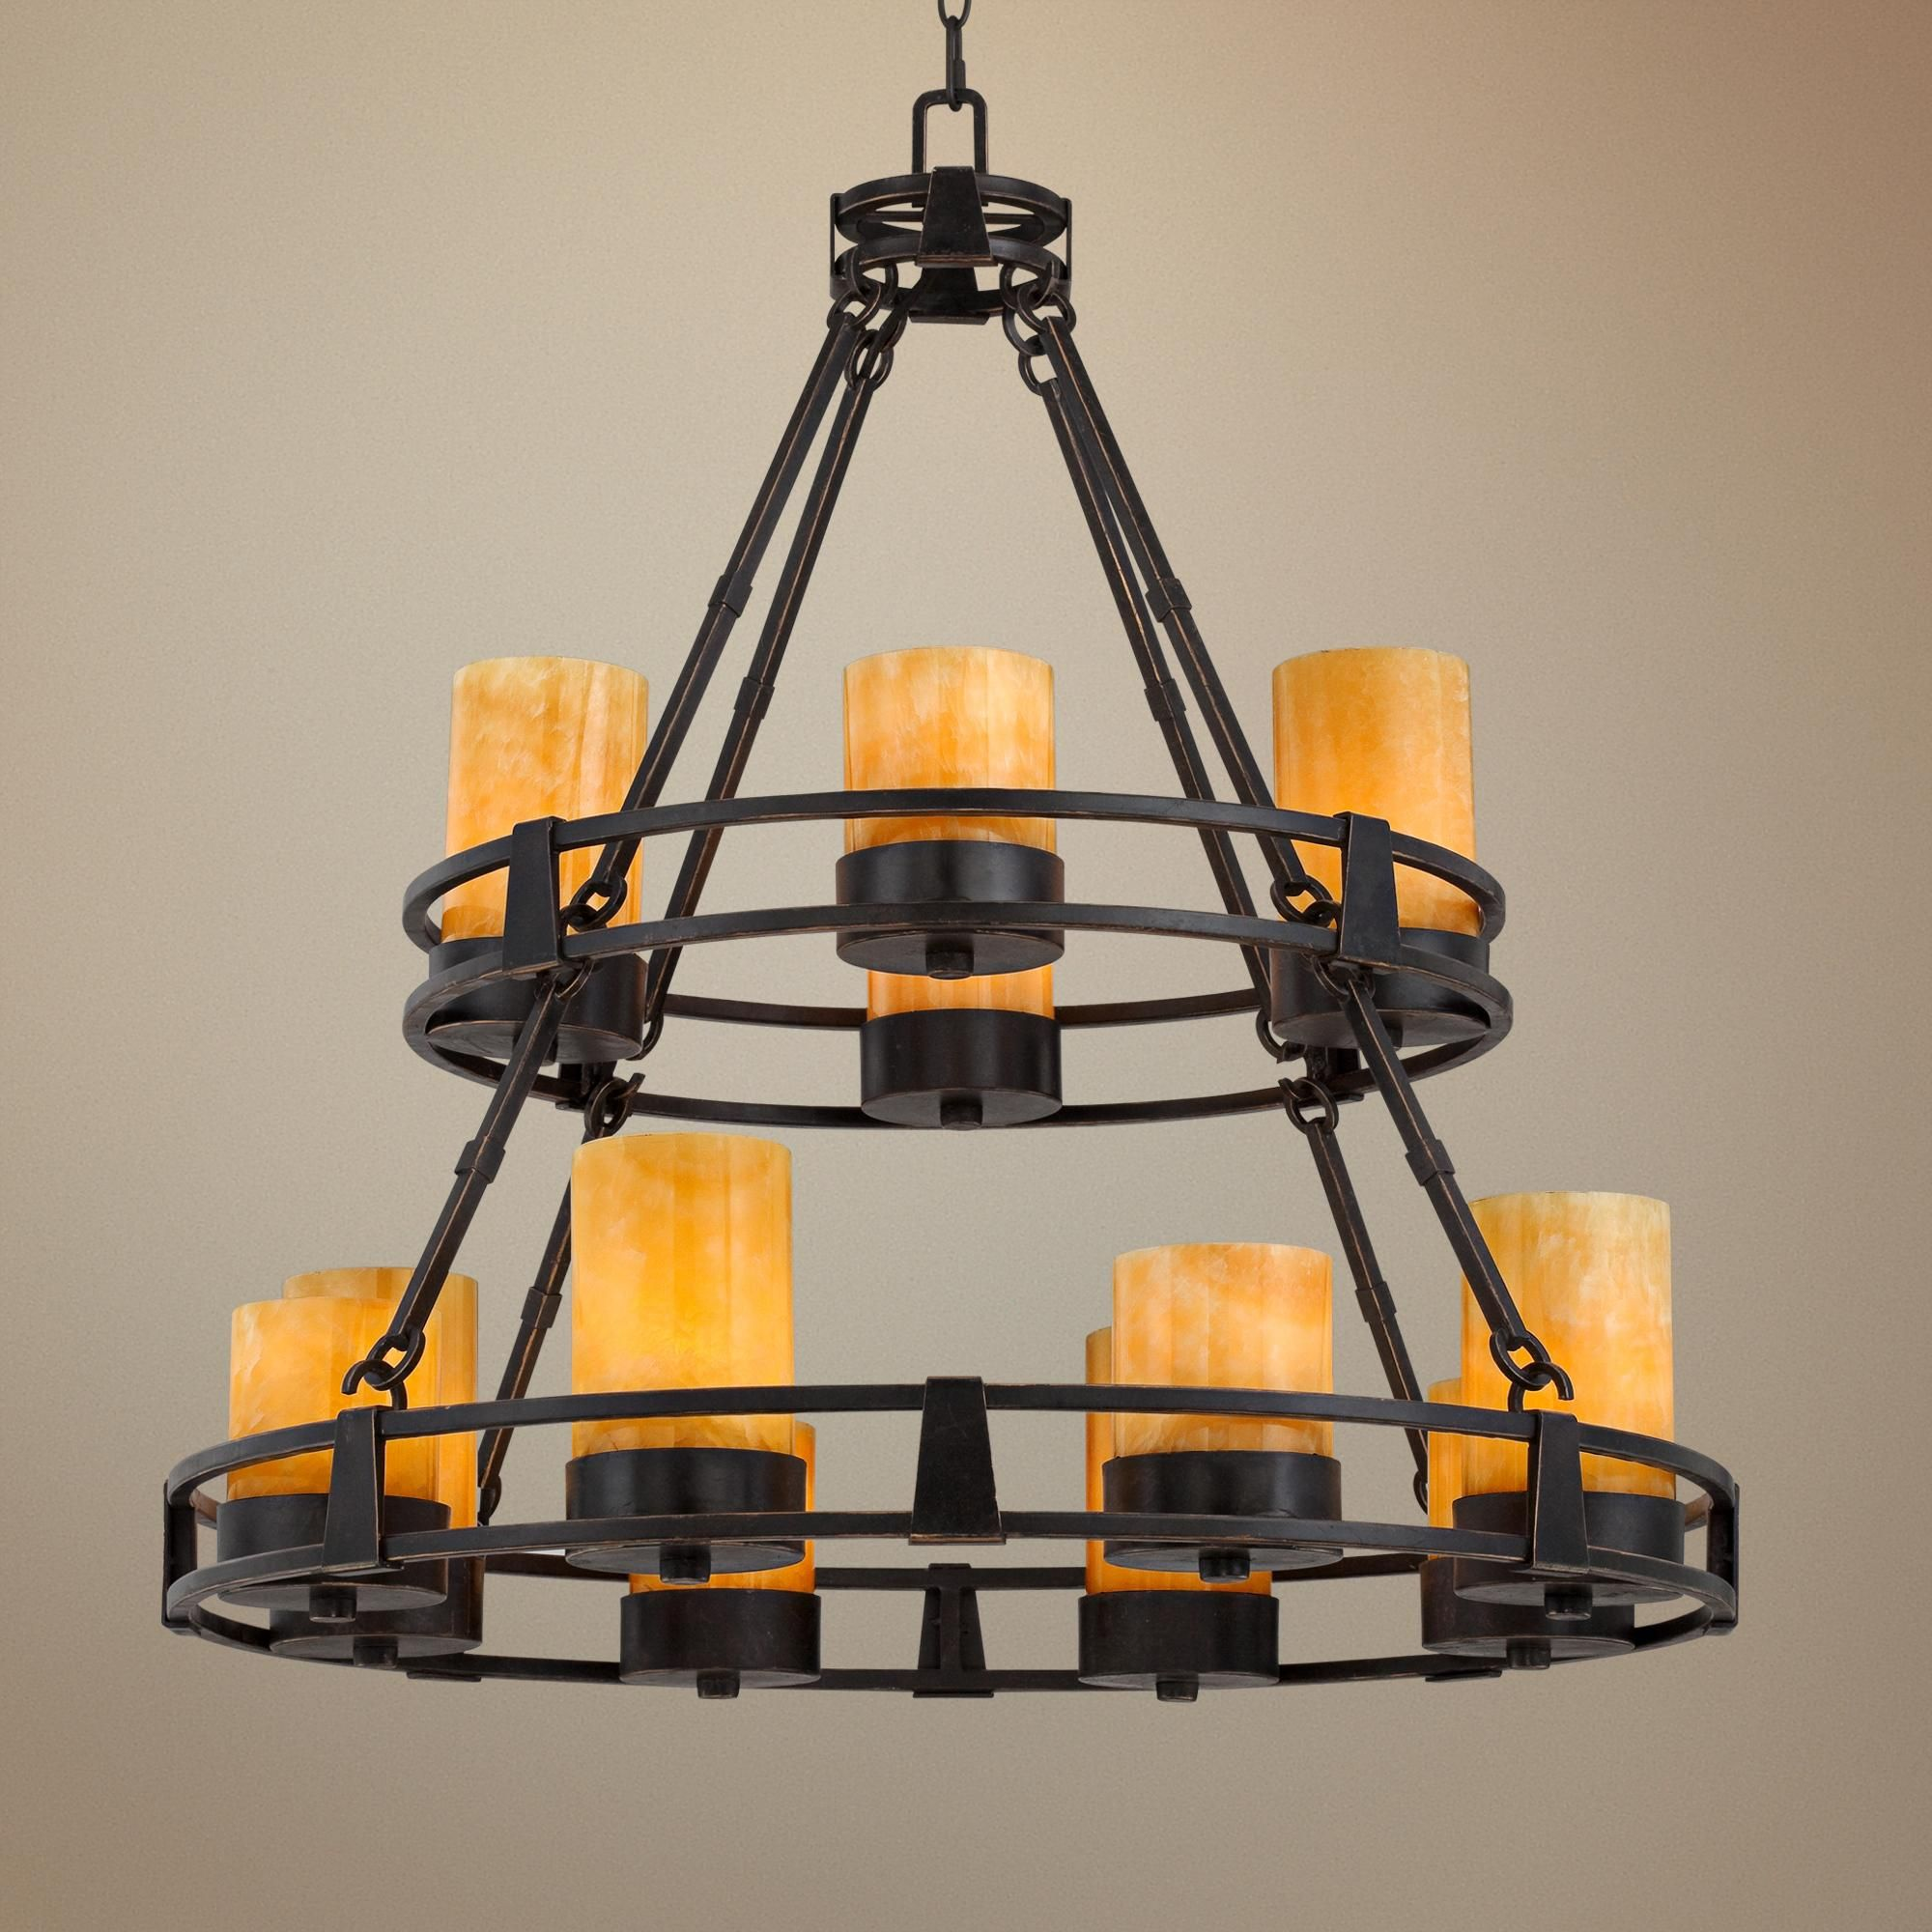 Sunset Onyx Stone 12 Light Faux Candle Chandelier R6623 Lamps Plus Faux Candle Chandelier Faux Candles Candle Chandelier